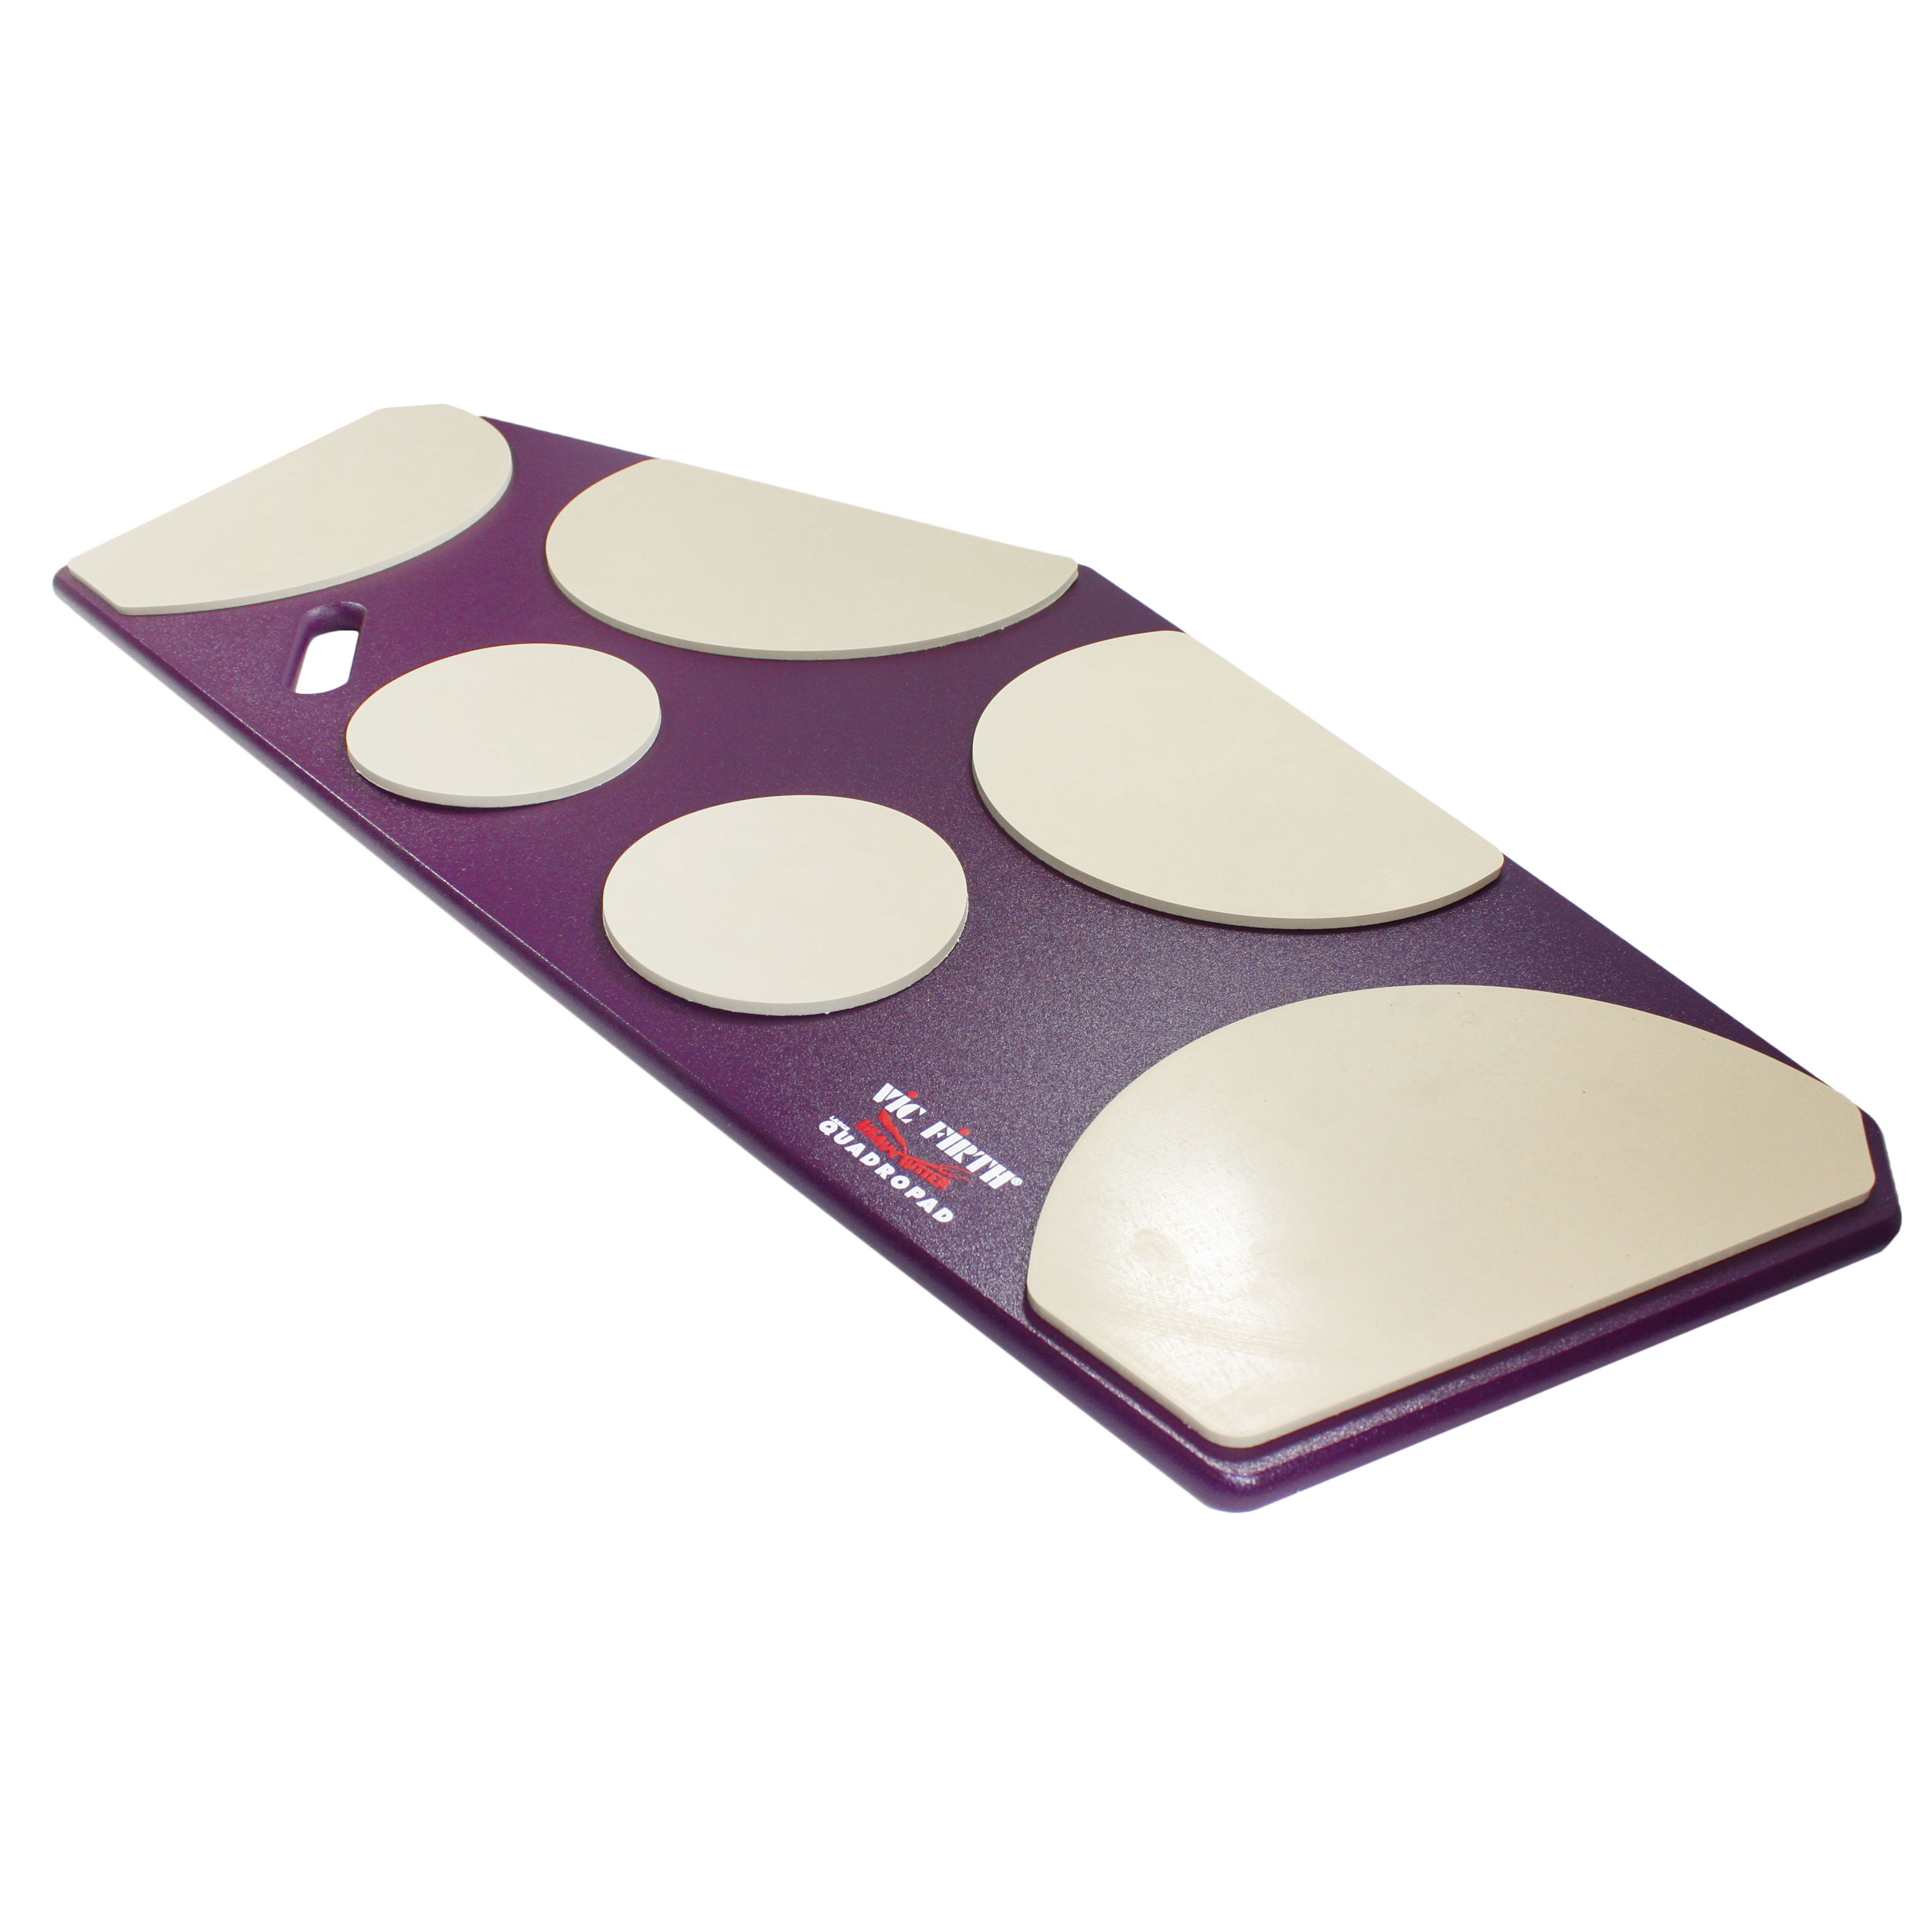 Alternate Image For Vic Firth Heavy Hitter Large Quadropad Tenor Pad